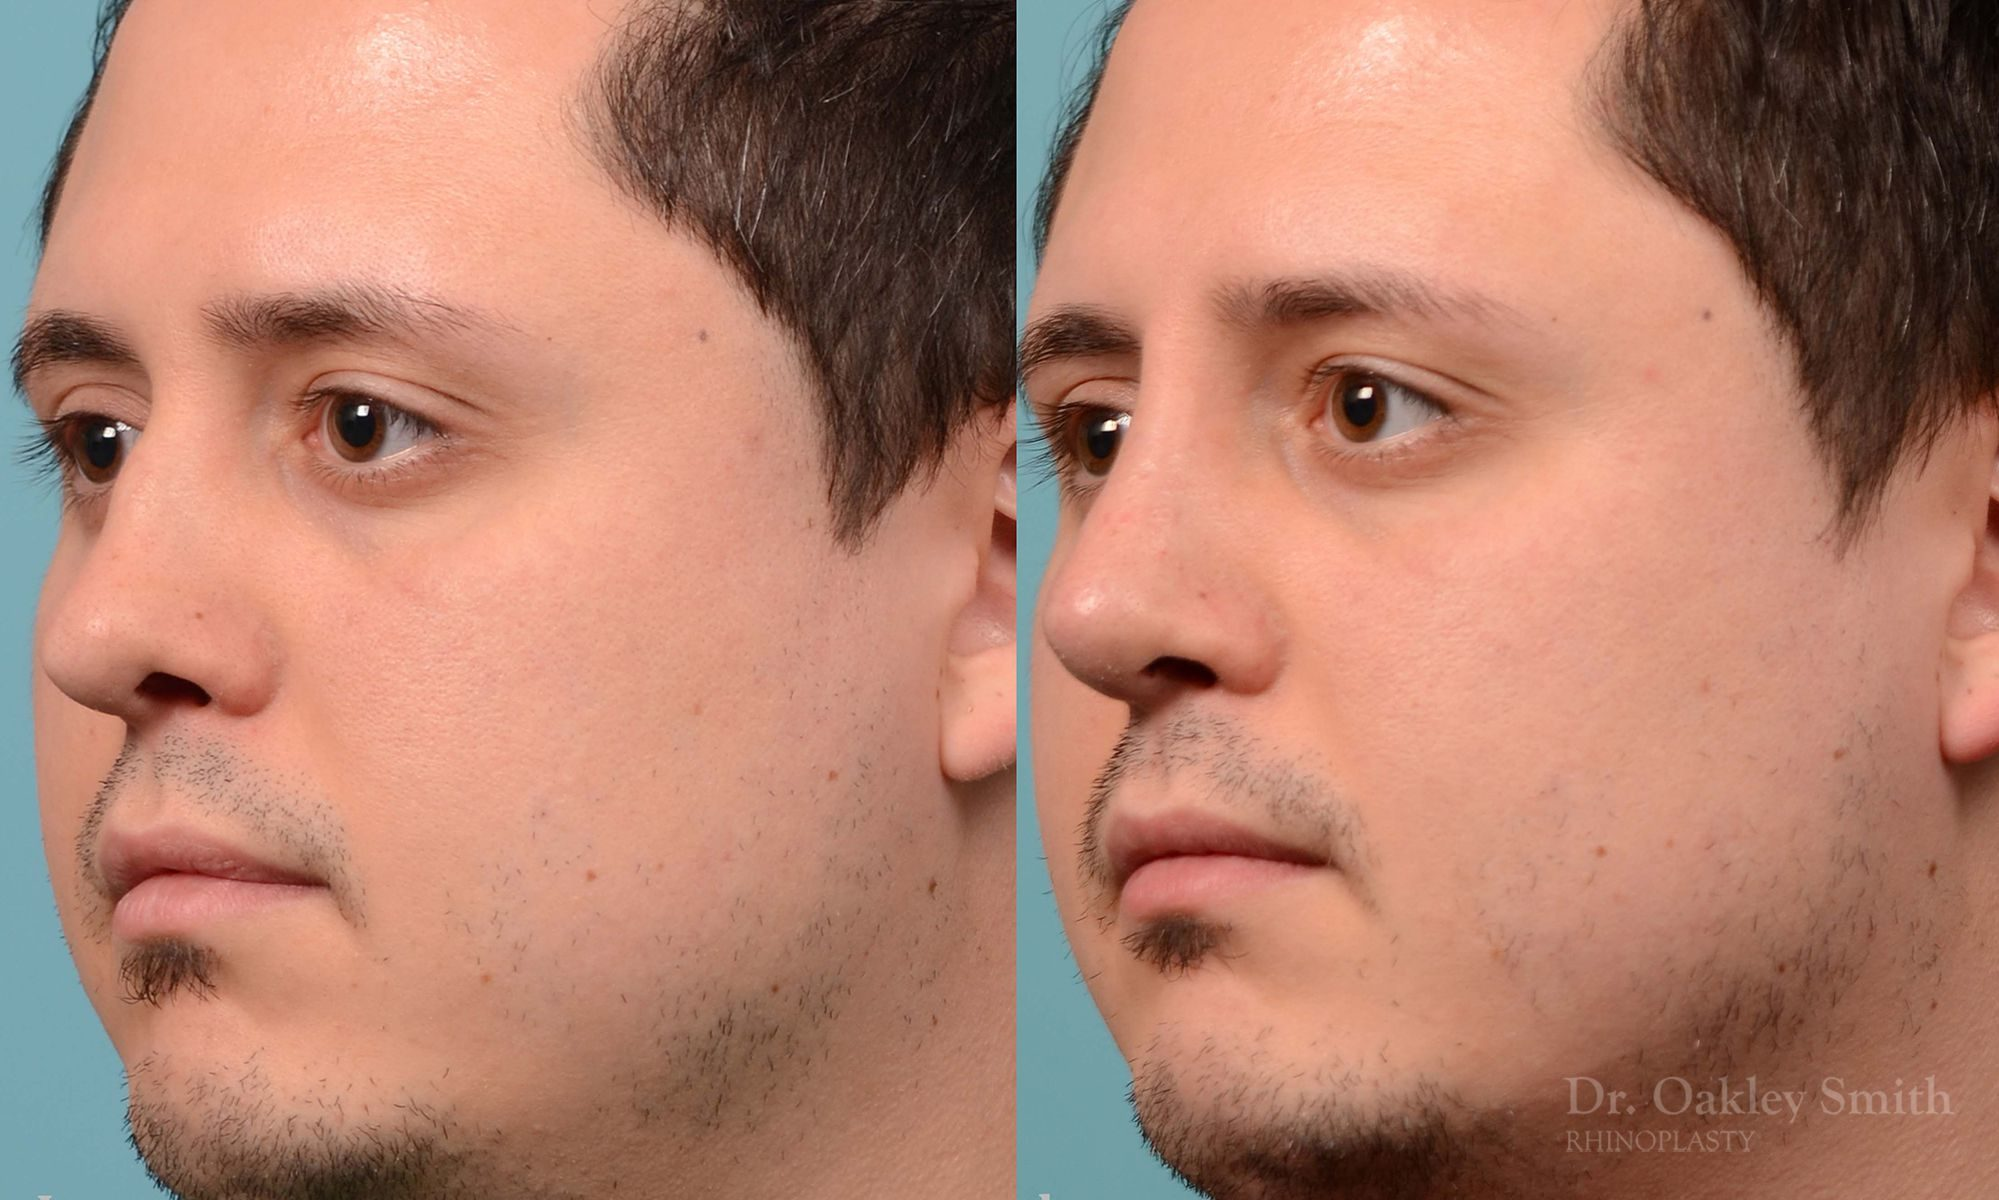 Revision Rhinoplasty, Rhinoplasty - Rhinoplasty Toronto Hump Reduction Case 203